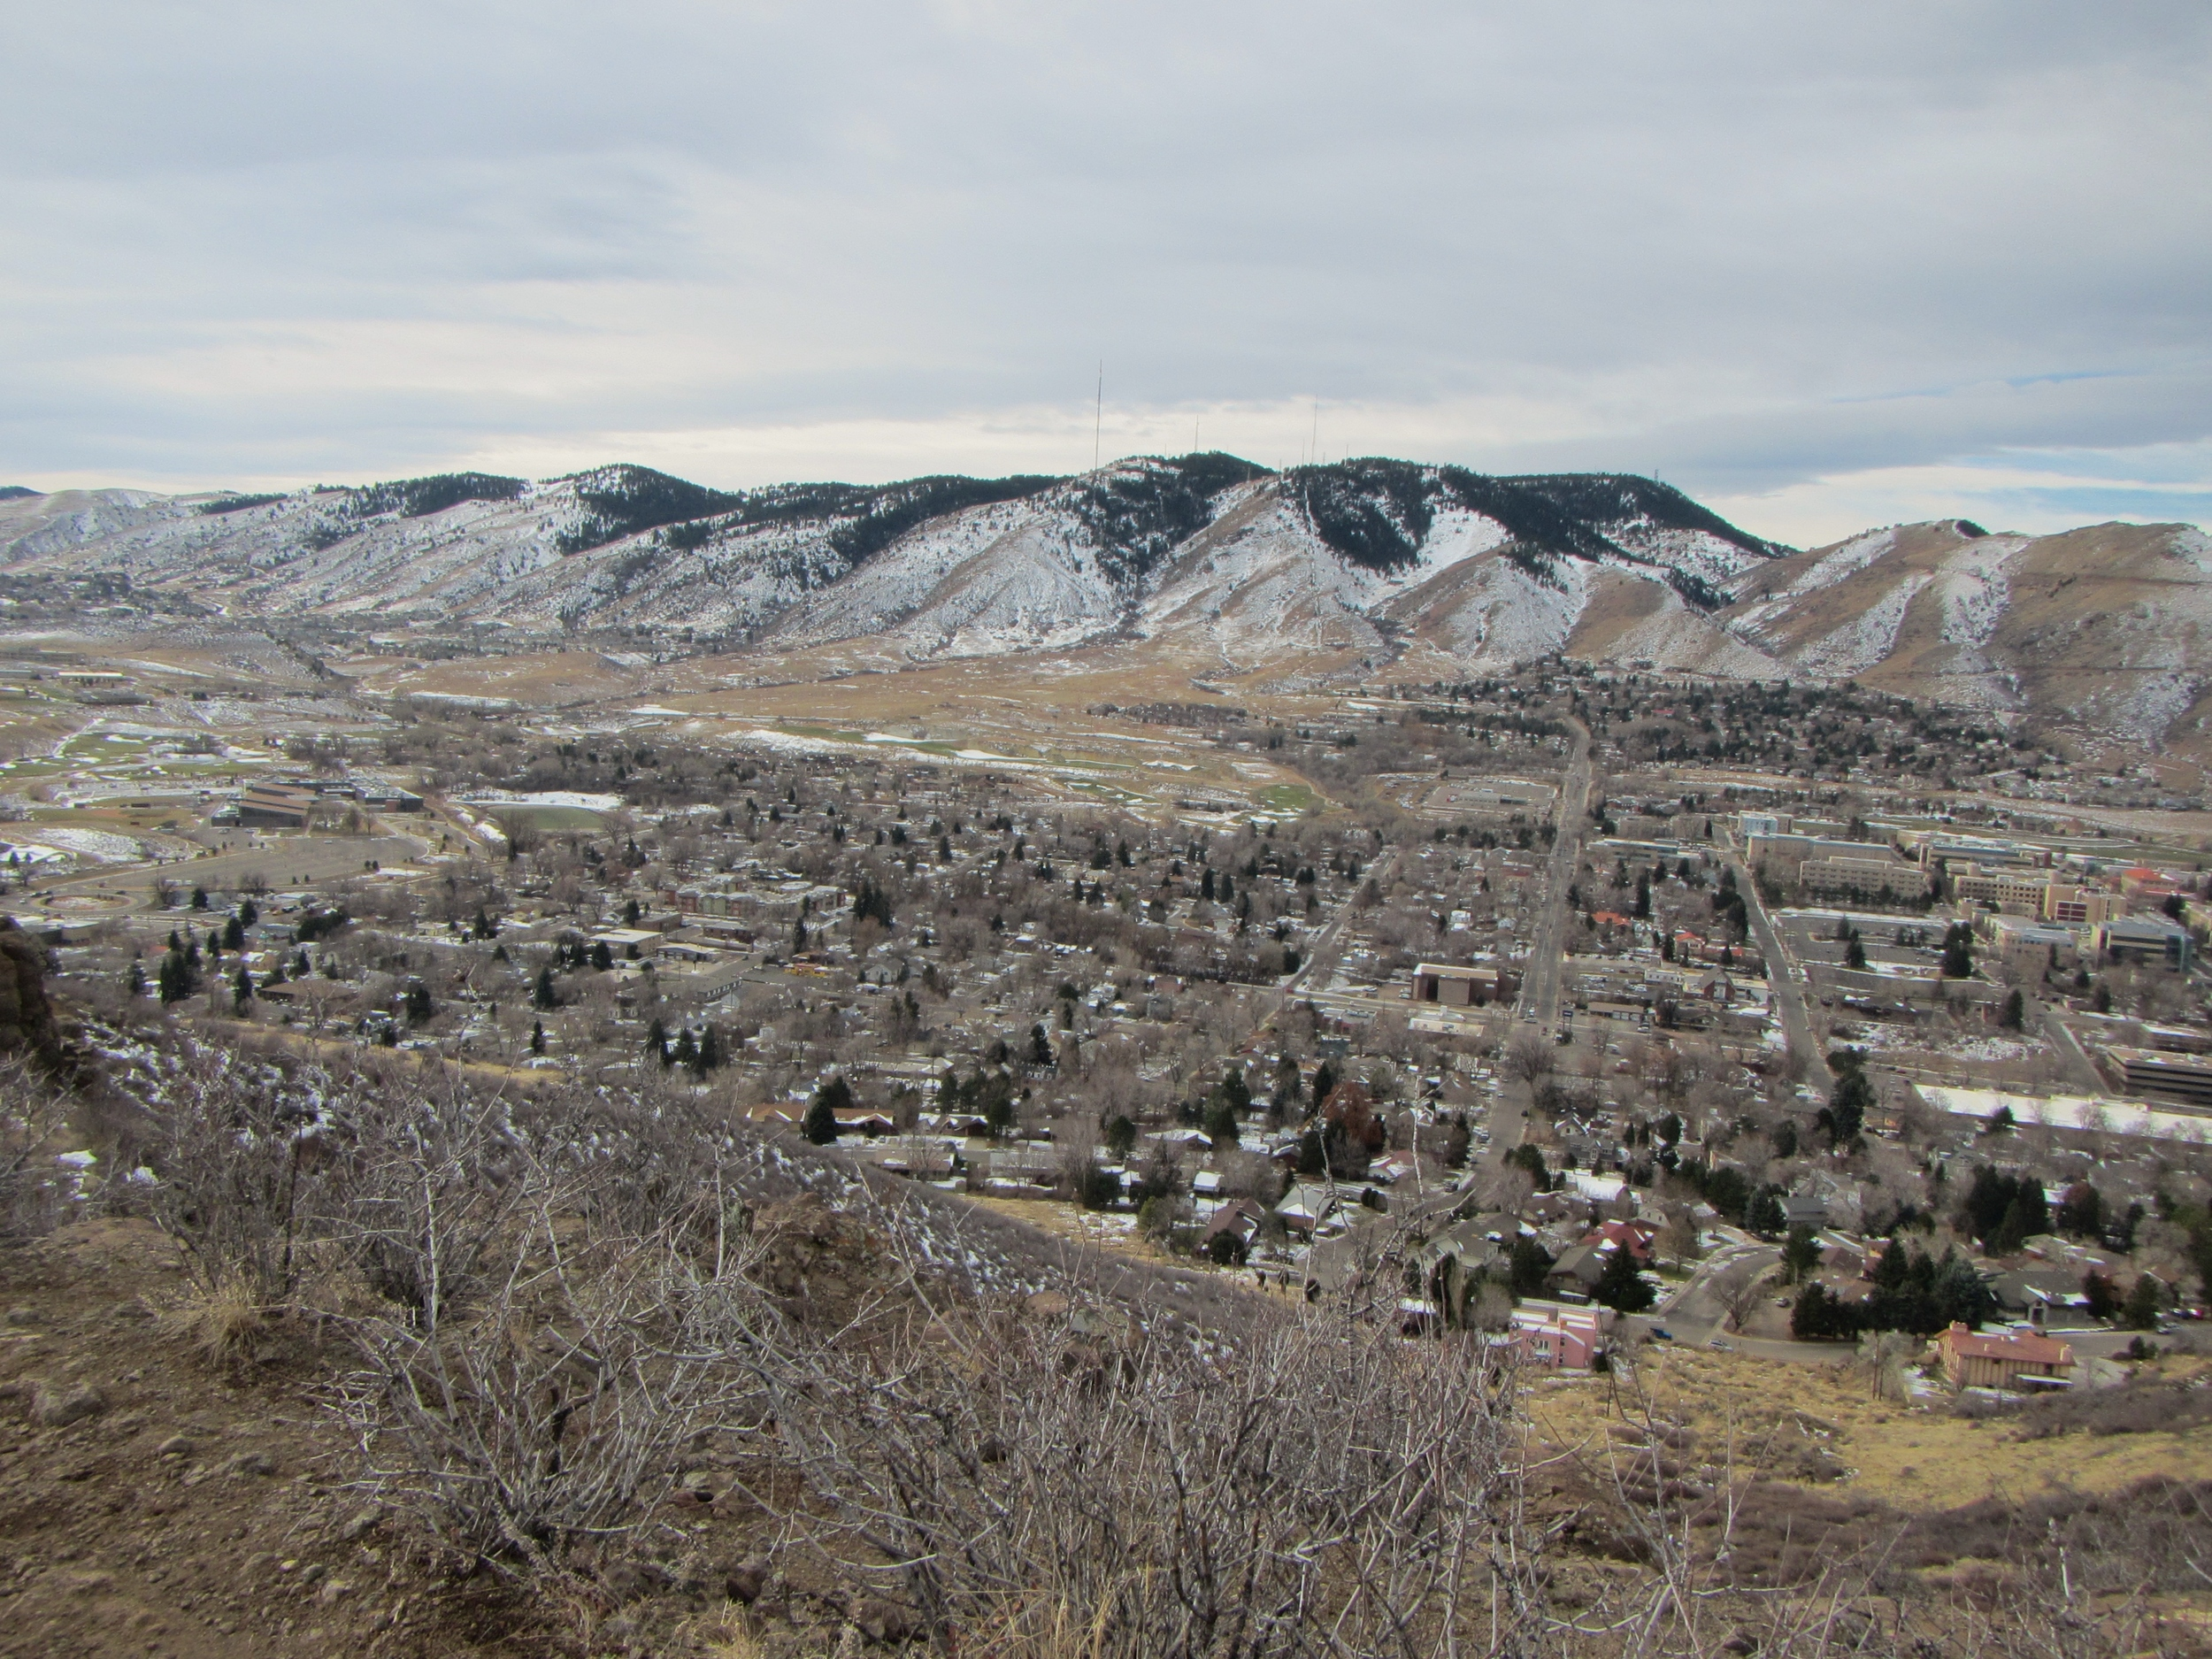 Looking down from Castle Rock, view of the City of Golden and the mountains